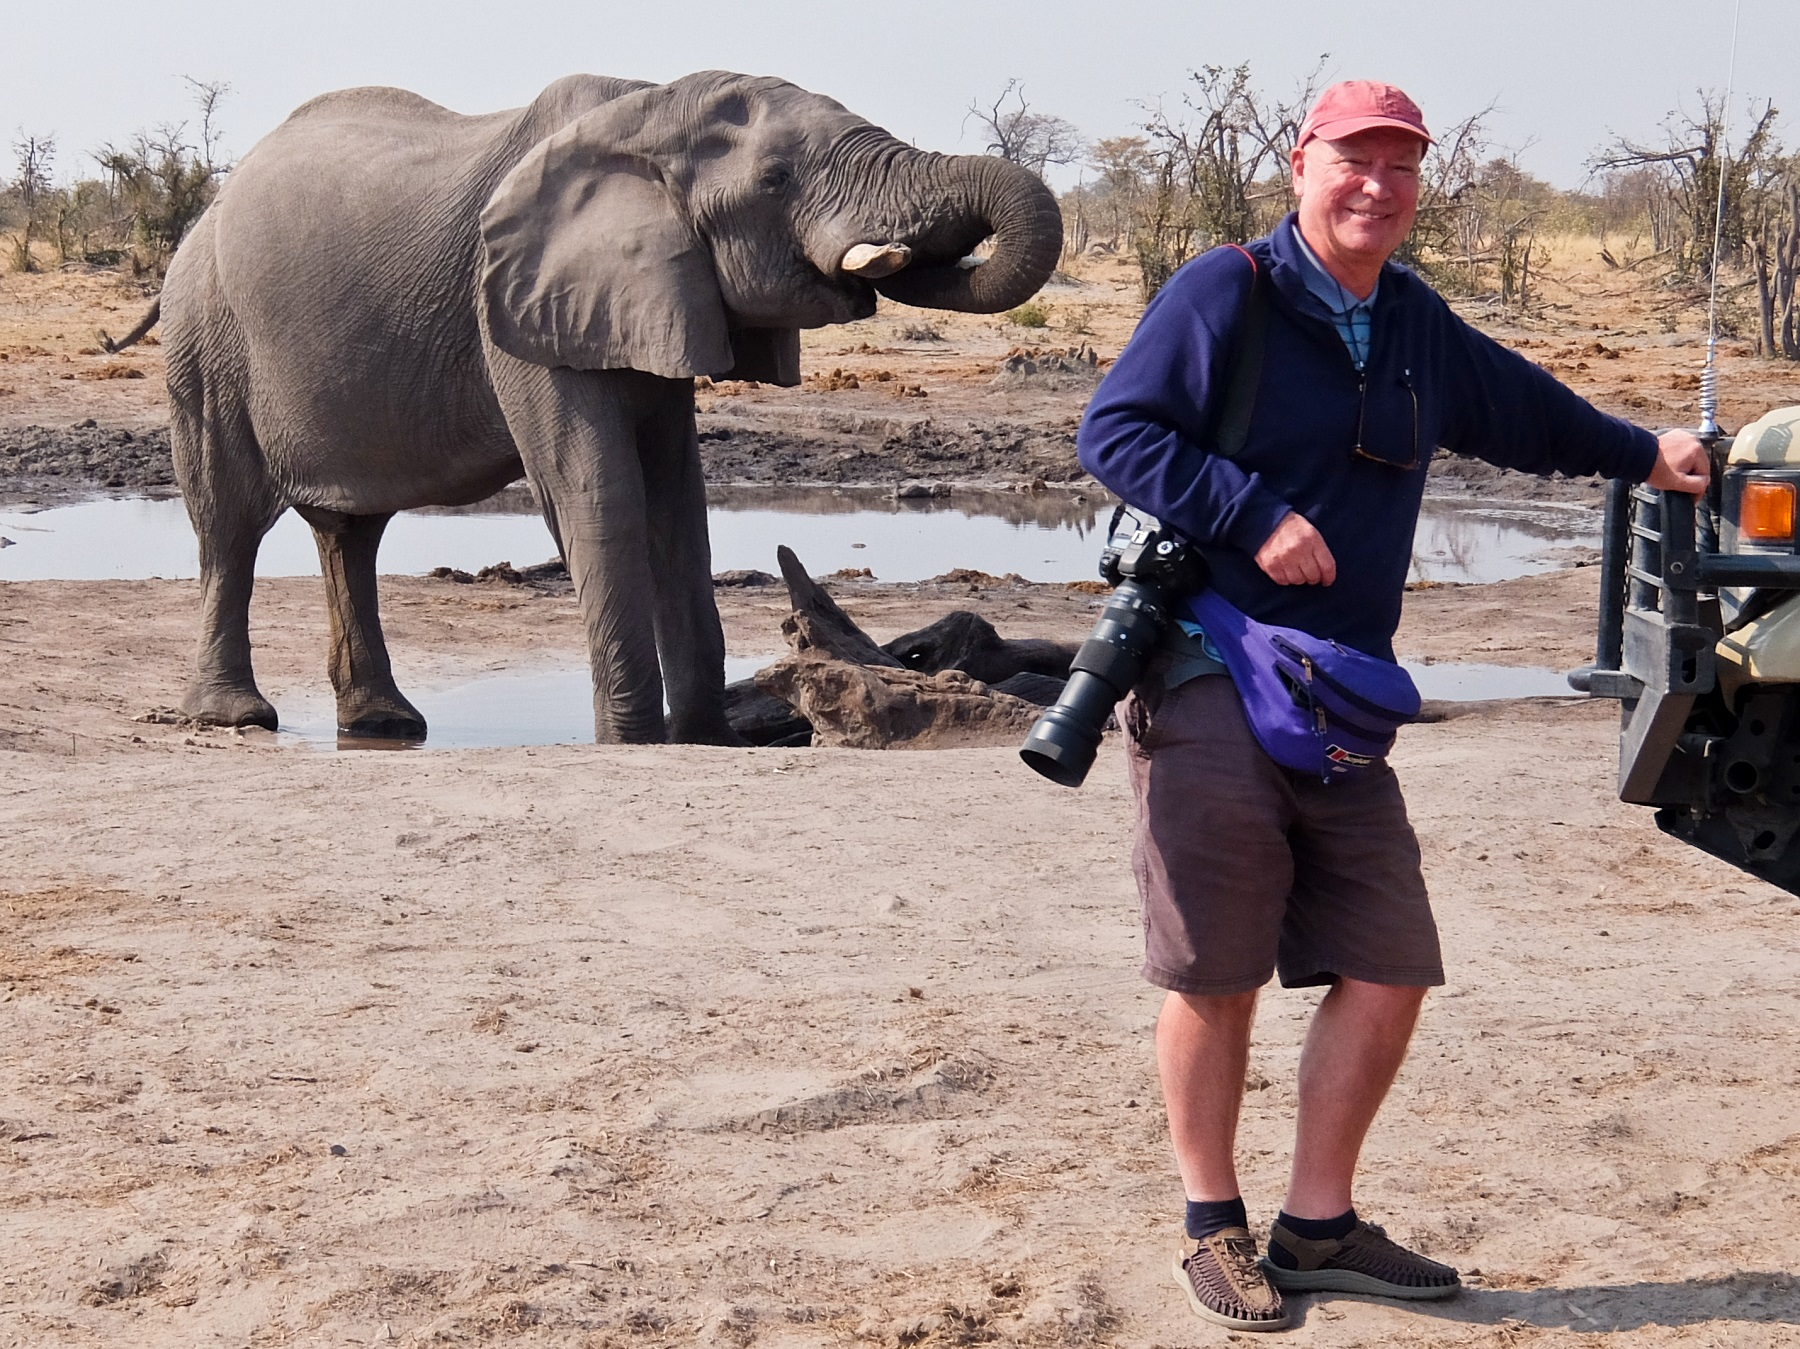 Rupert Standing with Elephant Behind-0858